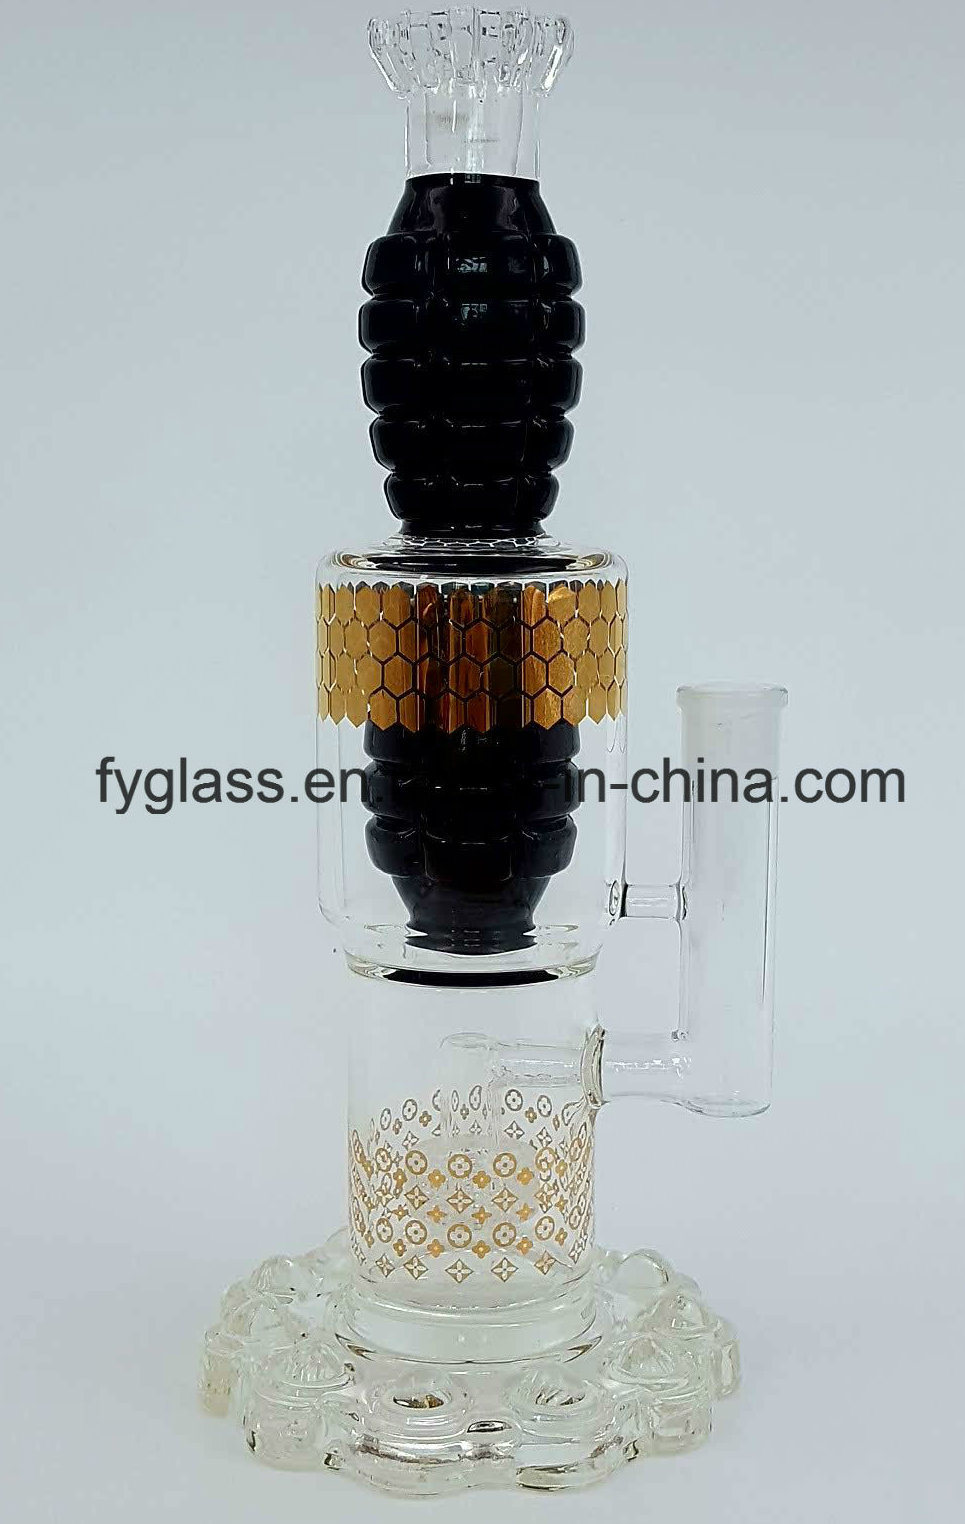 $20 Exclusive Grenade Glass Water Pipe Smoking Pipe with Heavy Bullet Base